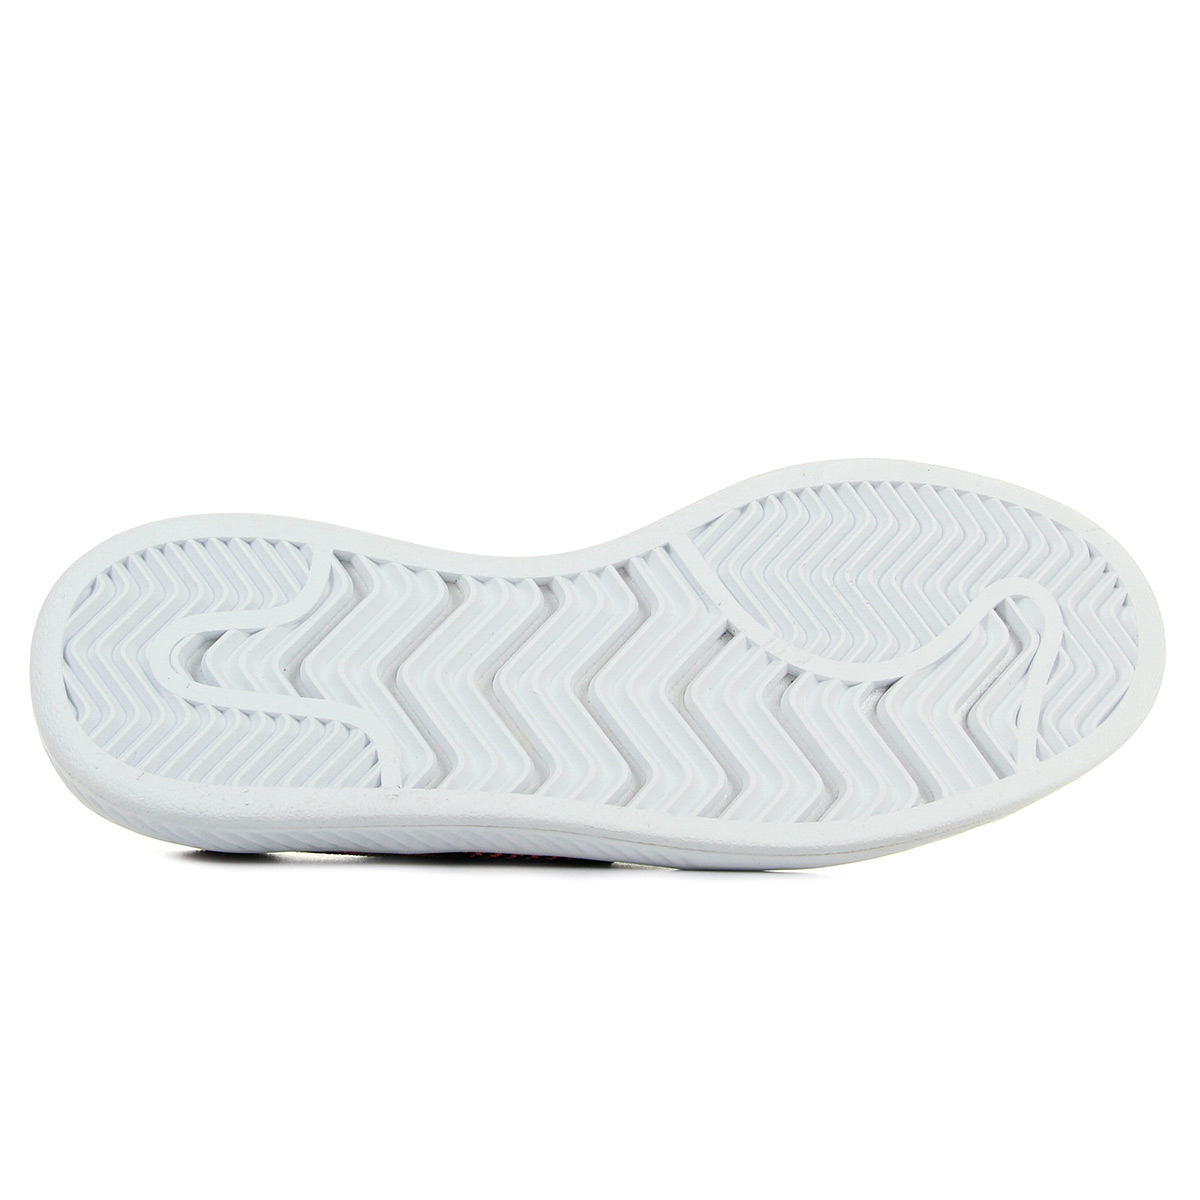 adidas Chaussures Superstar Bounce Pk W adidas soldes 2raoO0